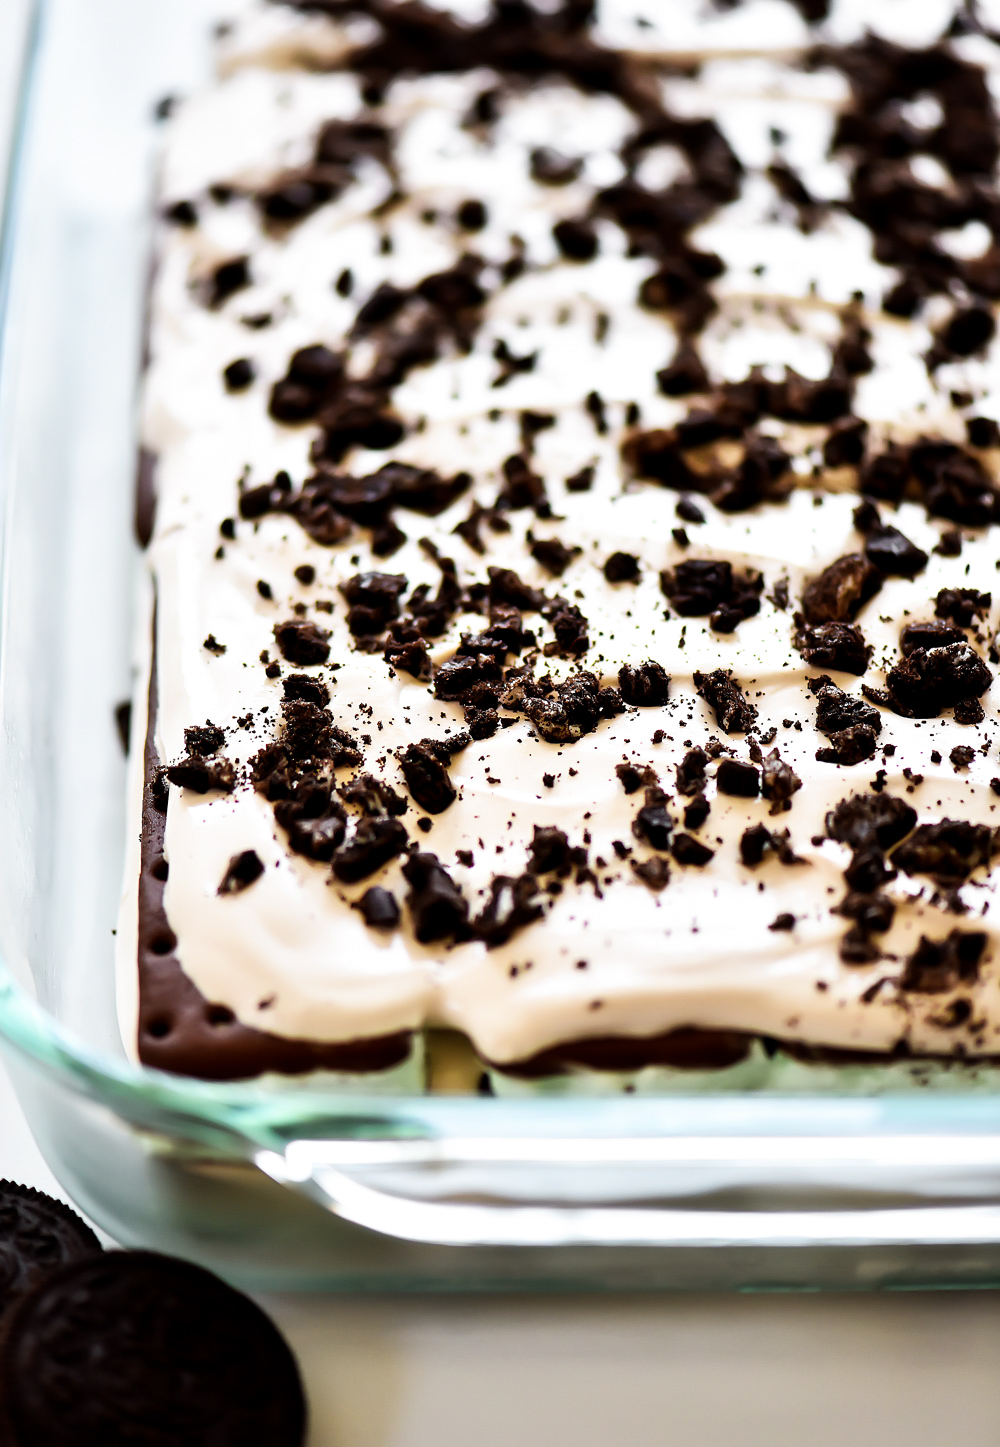 Layers of mint chocolate ice cream sandwiches, Cool Whip, and crushed Oreo cookie create one incredible dessert.